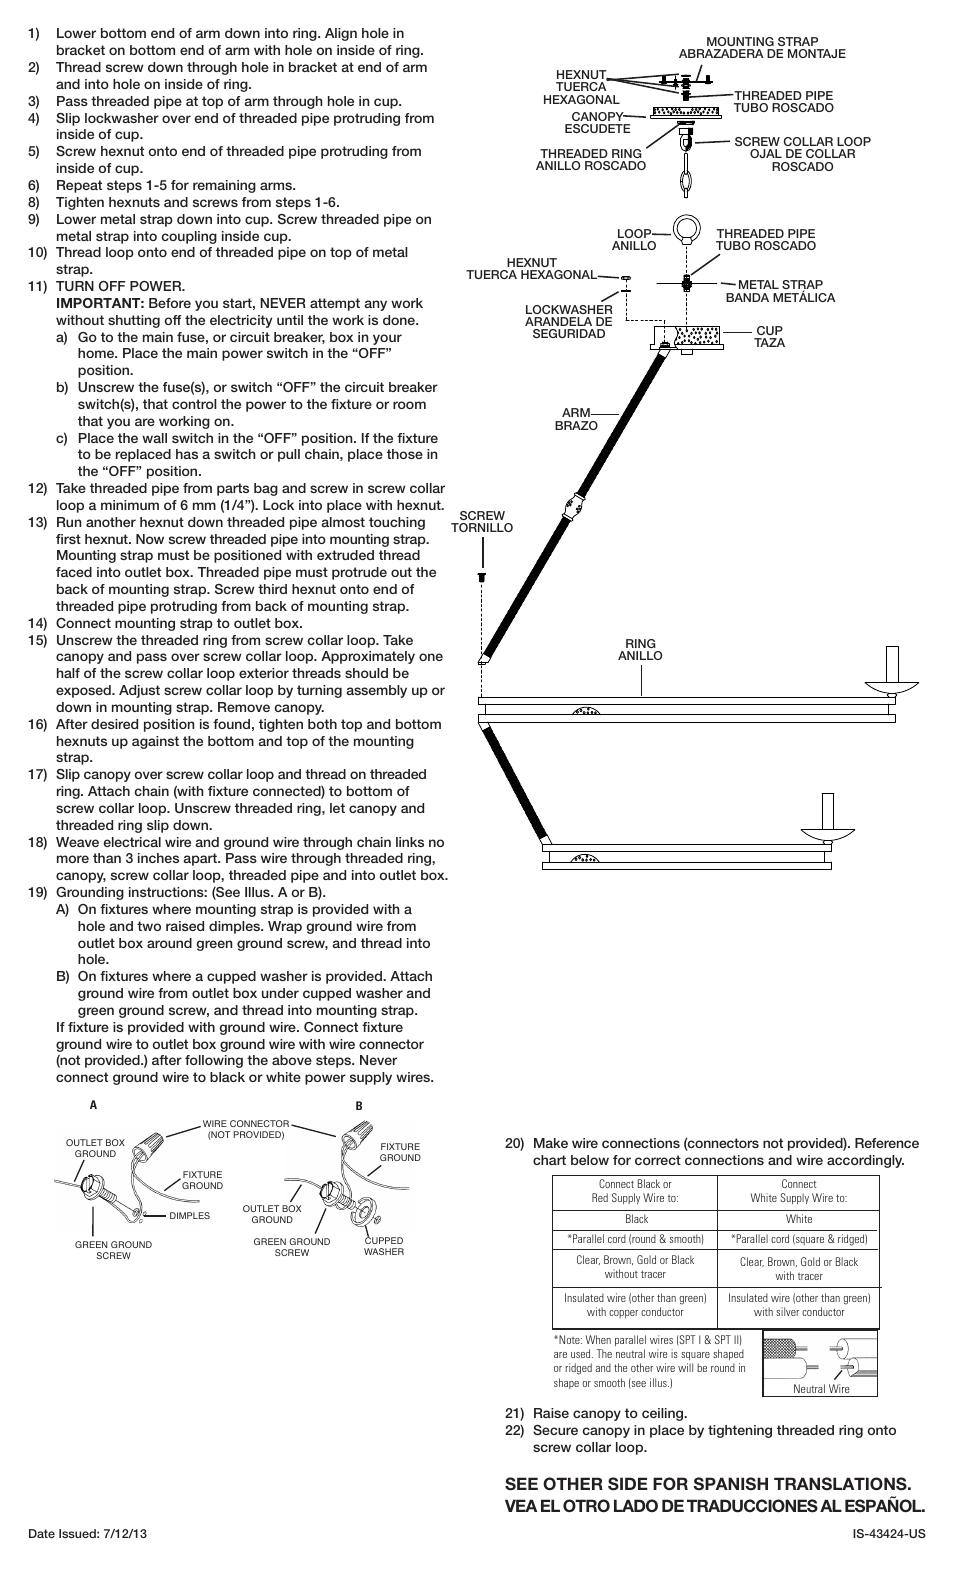 Kichler 43424 User Manual 2 Pages Also For 2048 42338 43193 Wiring Diagram 49448 49094 43123 42903 43652 5085 3674 45113 45061 43655 45478 43284 43243